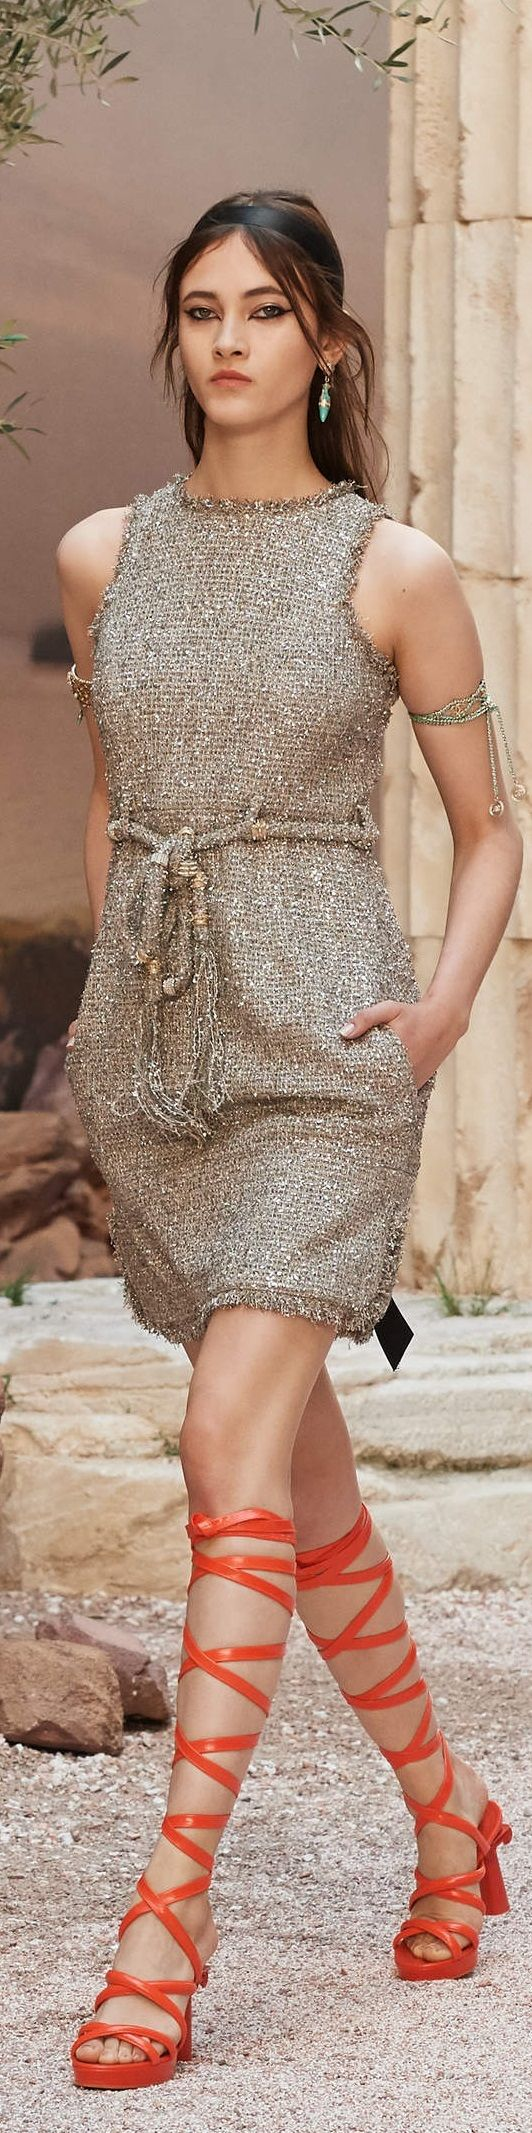 "Chanel Cruise 2018 at the Grand Palais in Paris, ""The Modernity of Antiquity"" inspired by Greece  chanel.com"